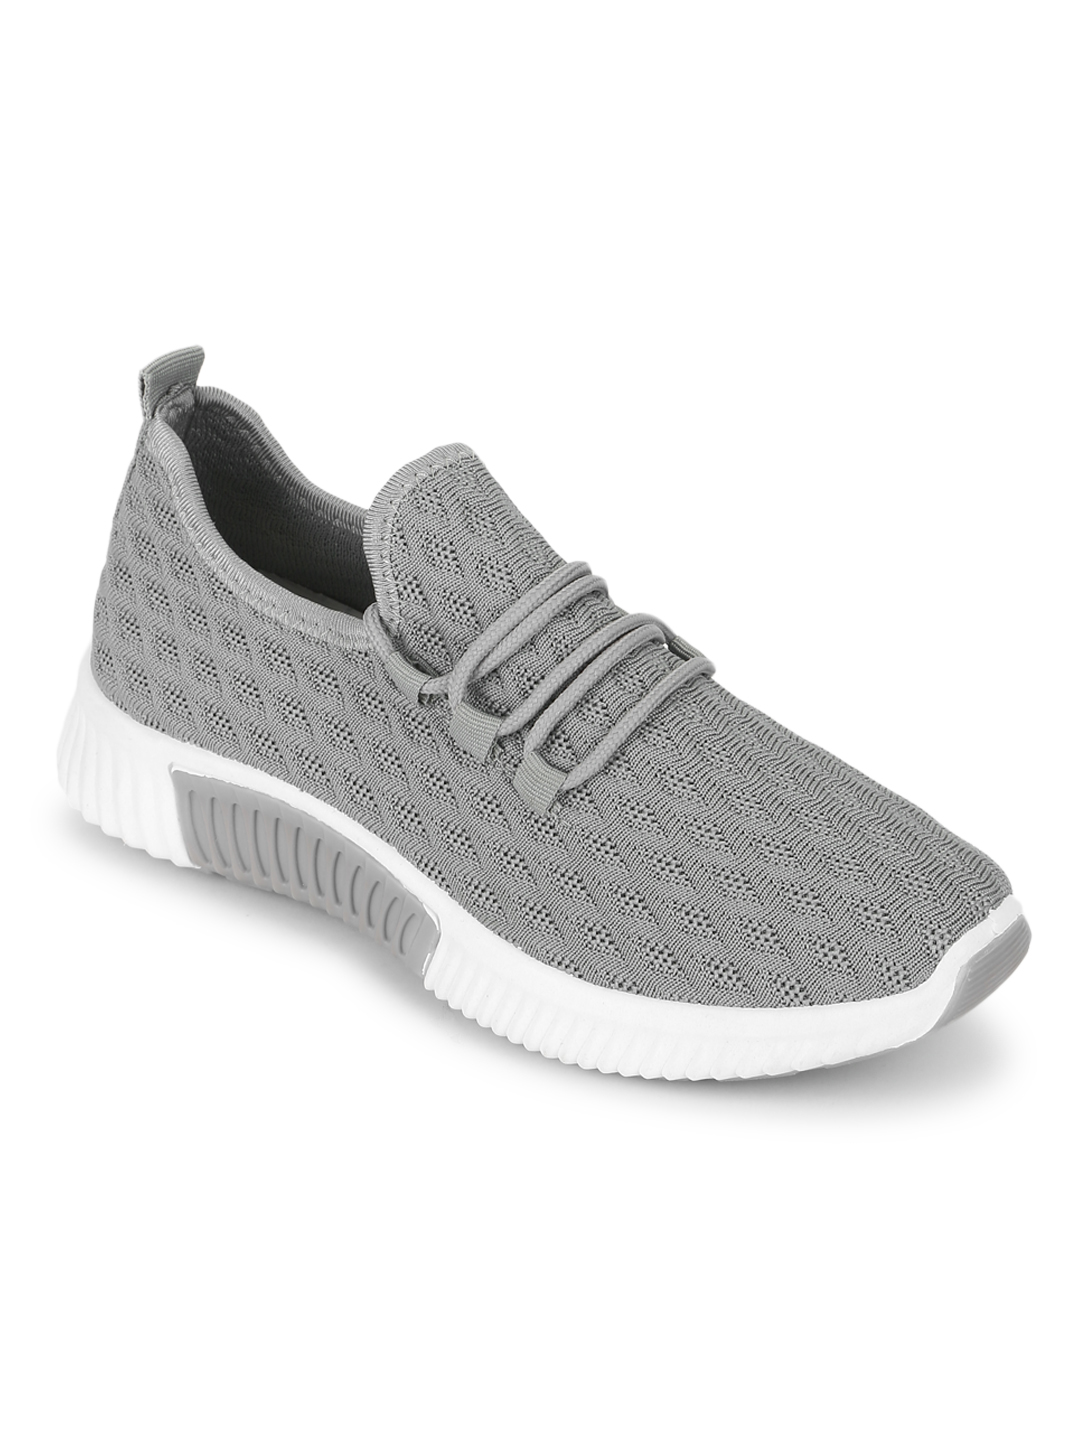 Truffle Collection | Truffle Collection Grey Knitted Slip On Sneakers